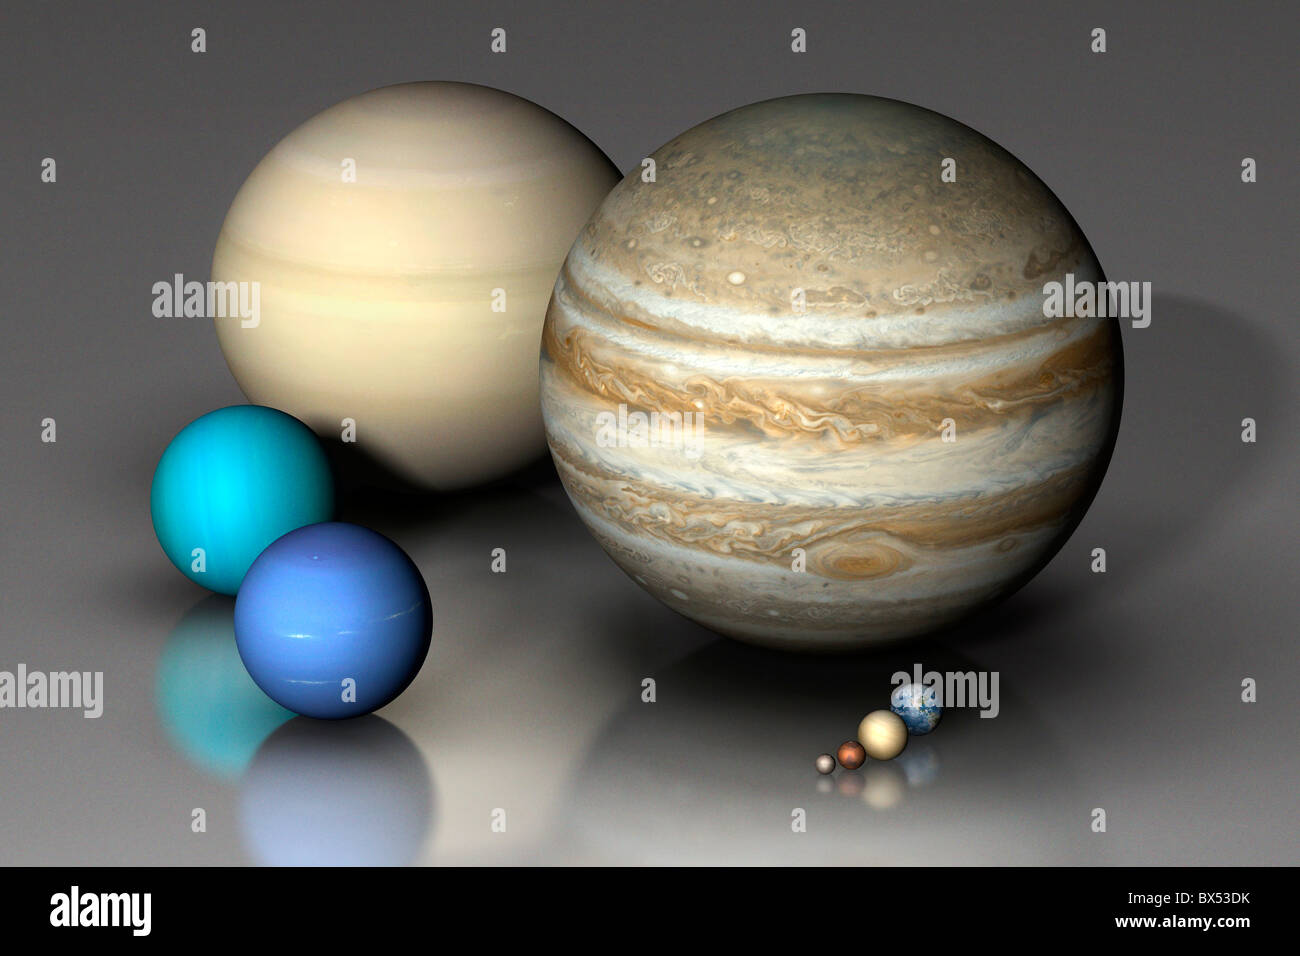 Planets Compared - Stock Image